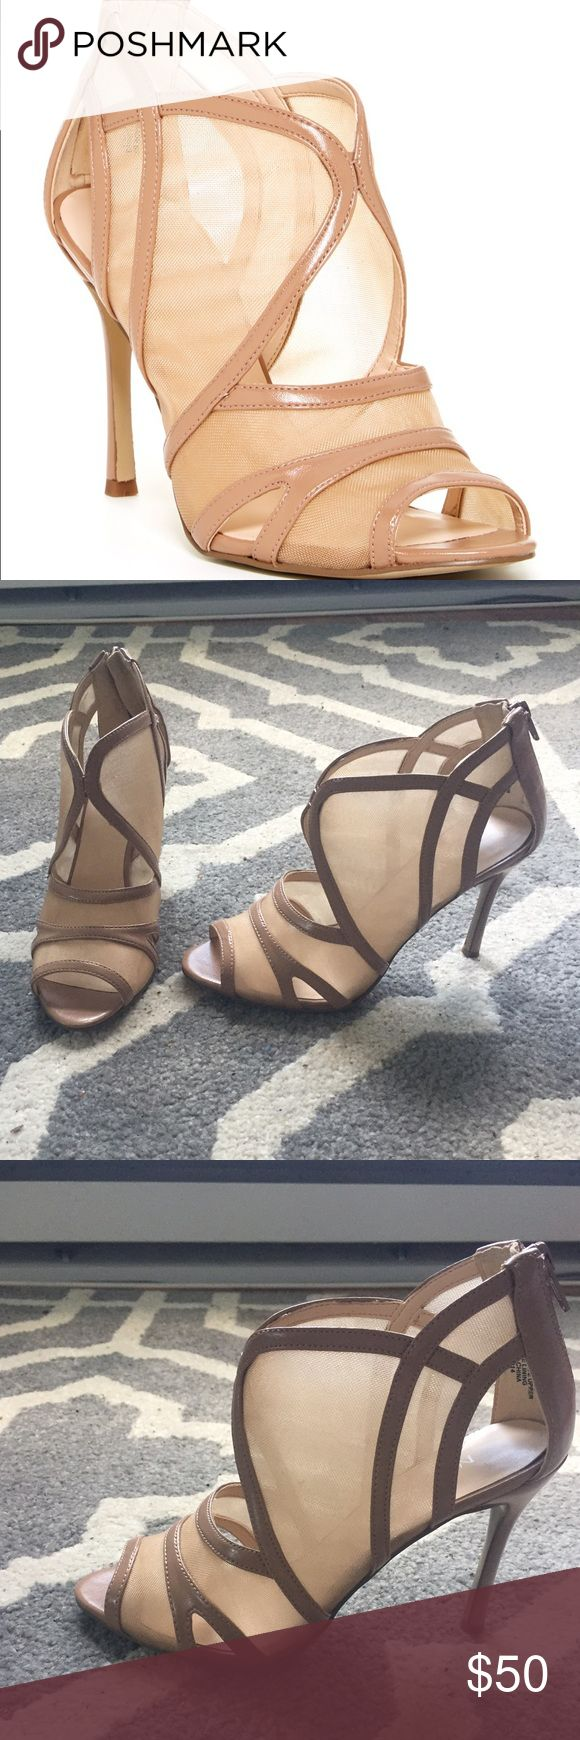 NINE WEST NUDE MESH HEELS SIZE 6 Nine West heels in nude. Size 6. Previously worn in great condition Nine West Shoes Heels